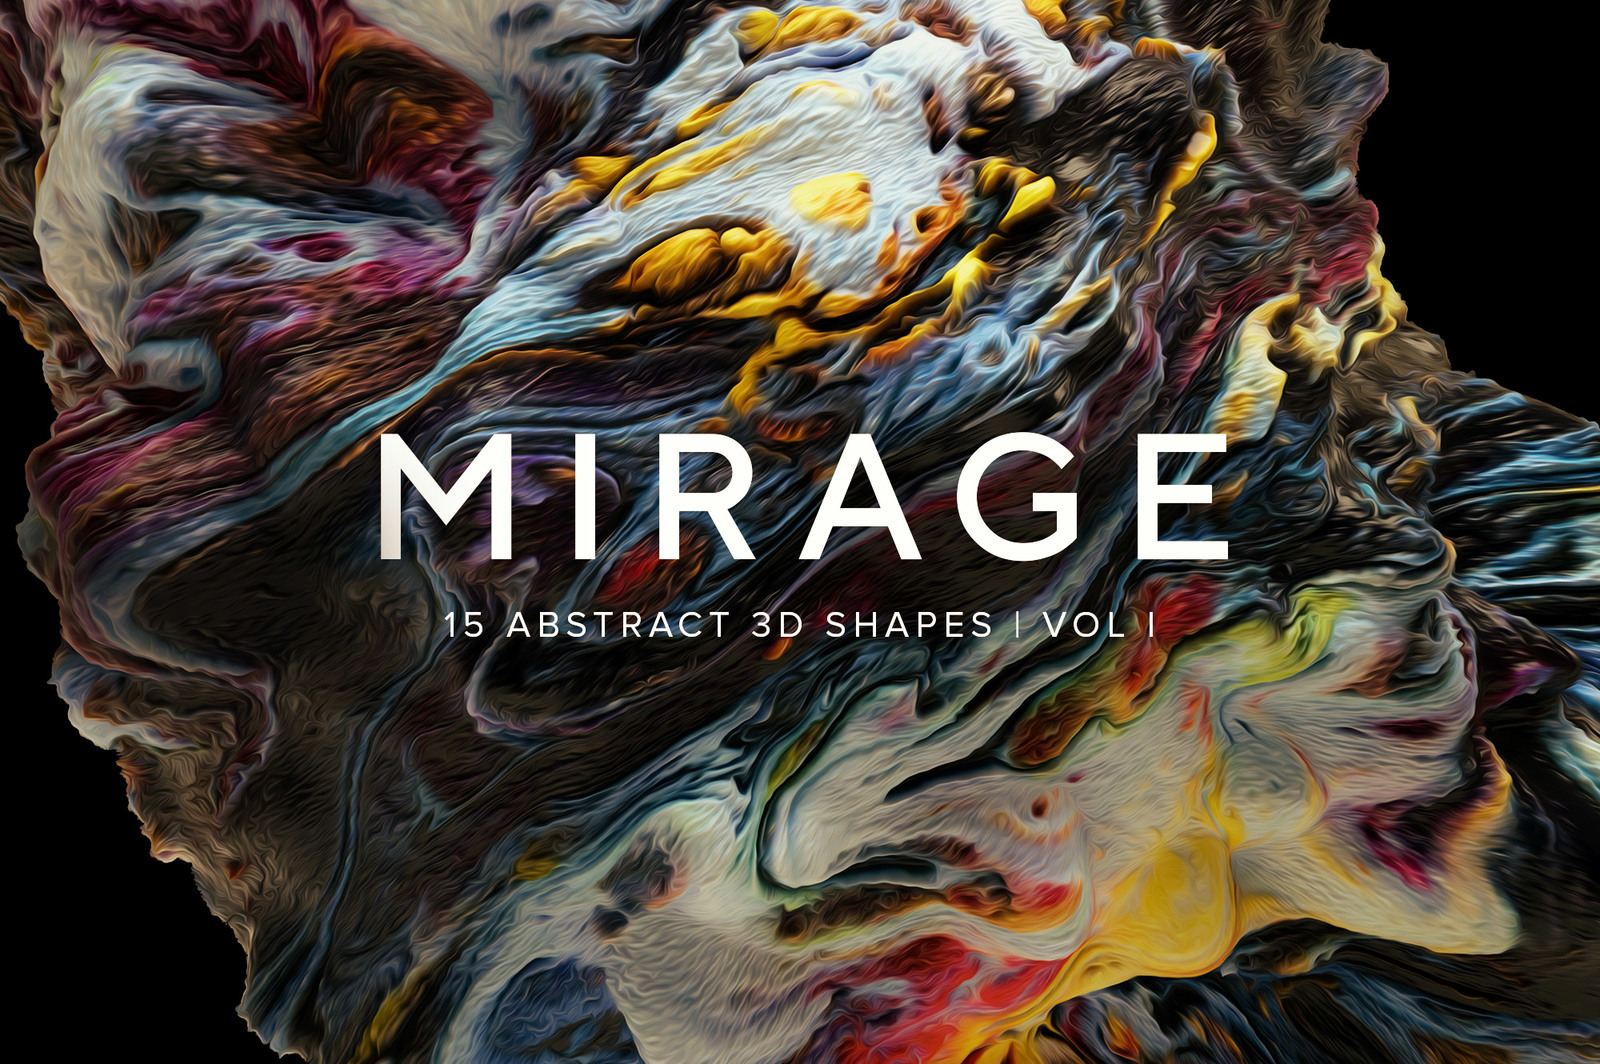 Mirage Vol.1: Abstract 3D Shapes